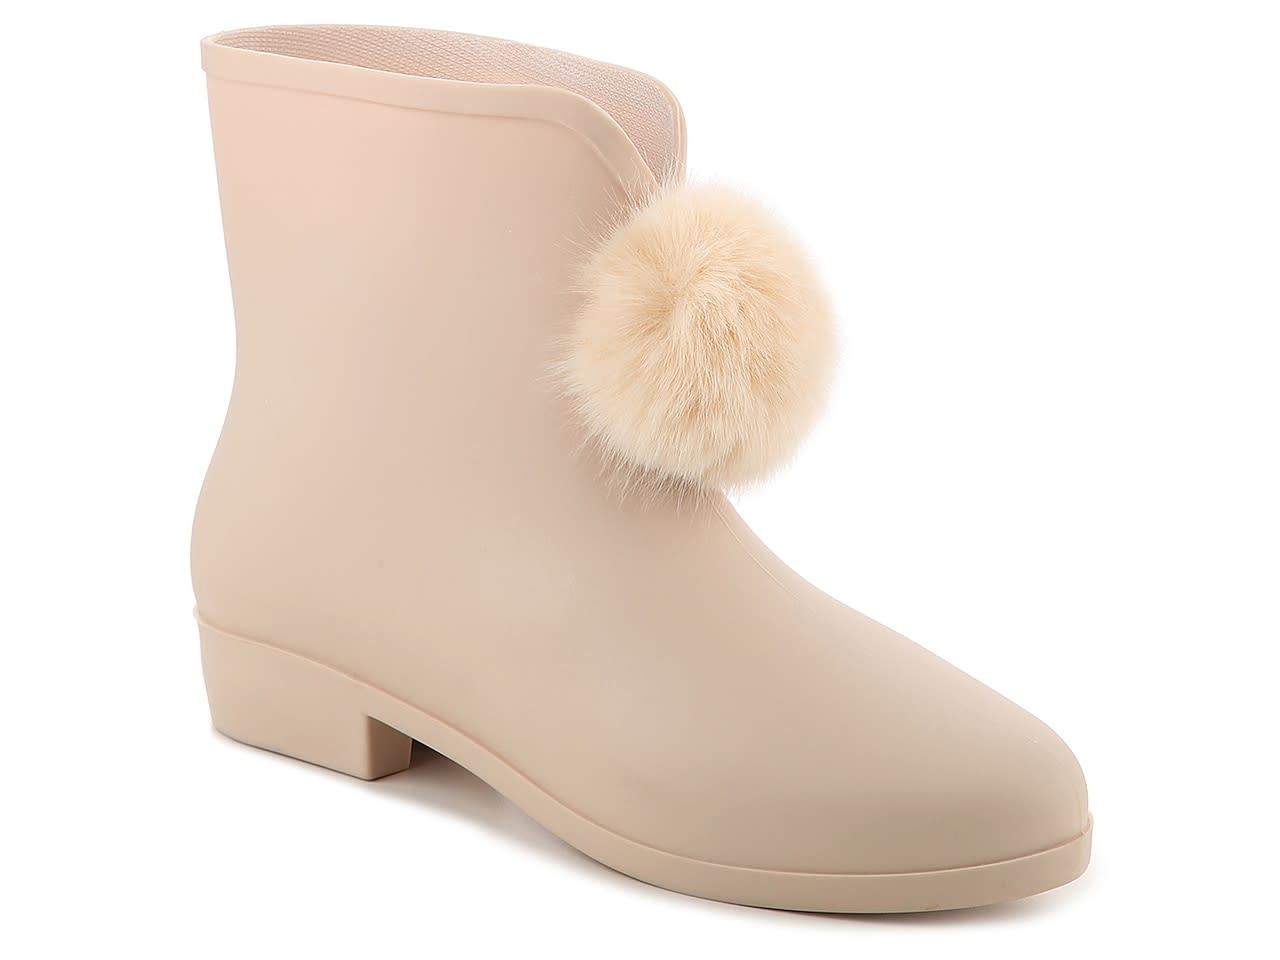 Picabow Pompom Beige Rain Boot